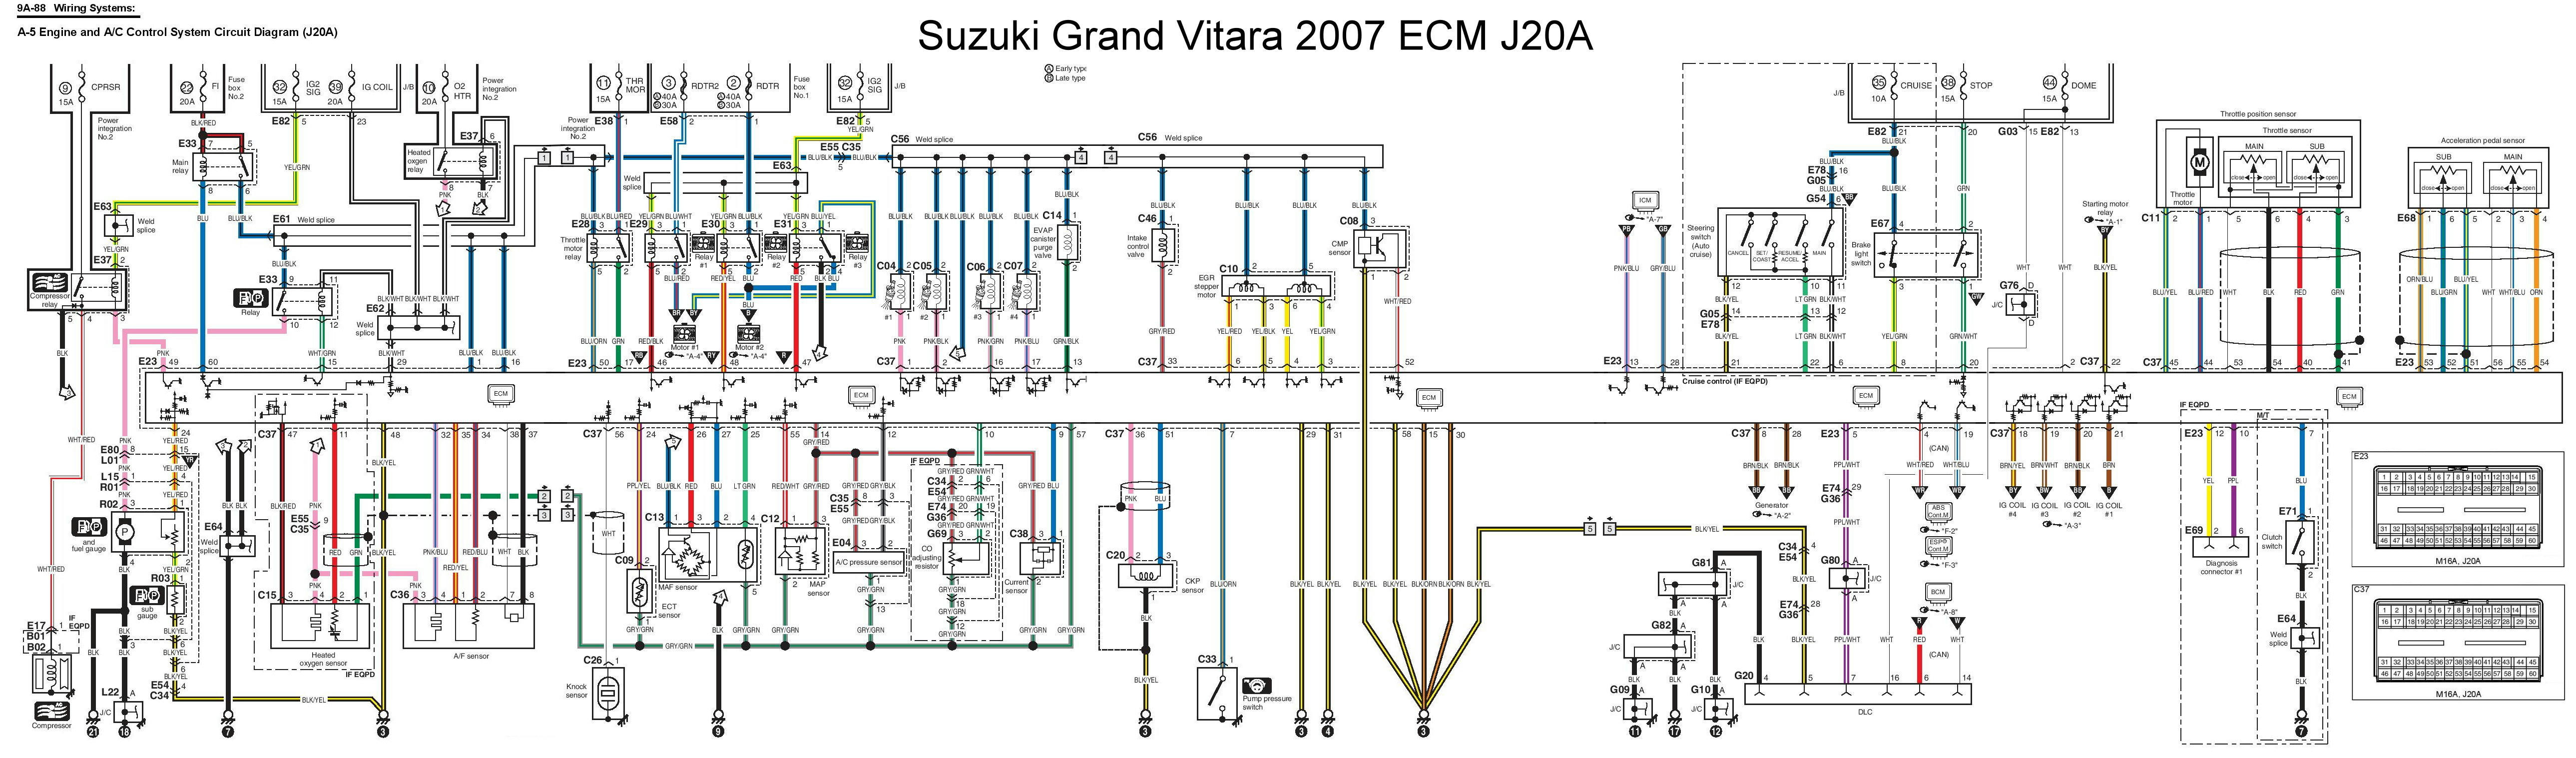 q8c21w9944rm9l5zg grand vitara j20a ecu pinouts suzuki forums suzuki forum site 2006 Suzuki Grand Vitara at webbmarketing.co